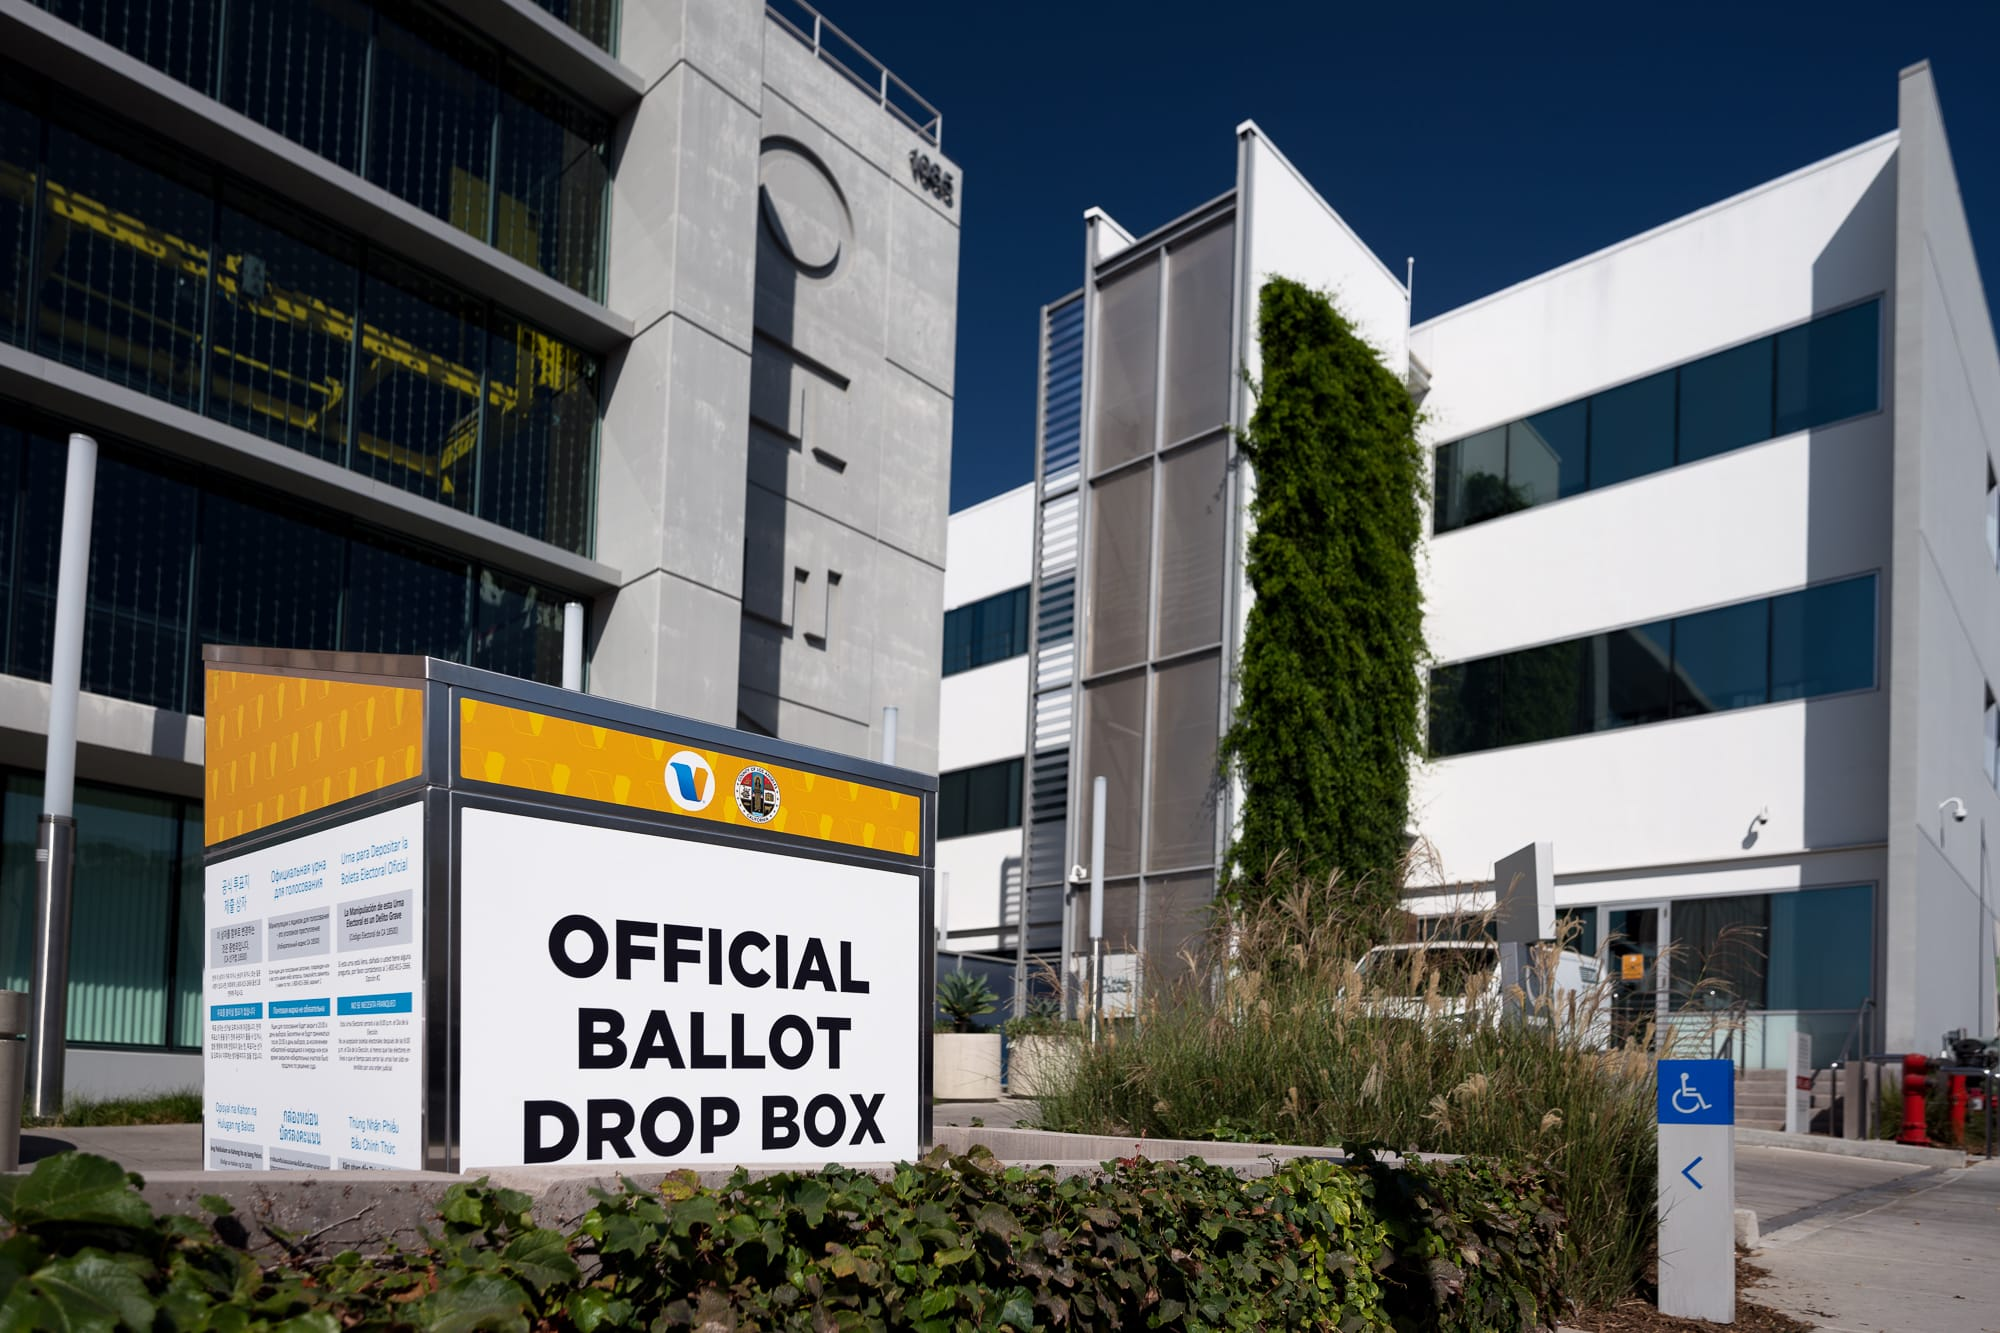 Officials Investigating Mail-In Ballots Cast By Deceased Individuals In 2020 Election. 1